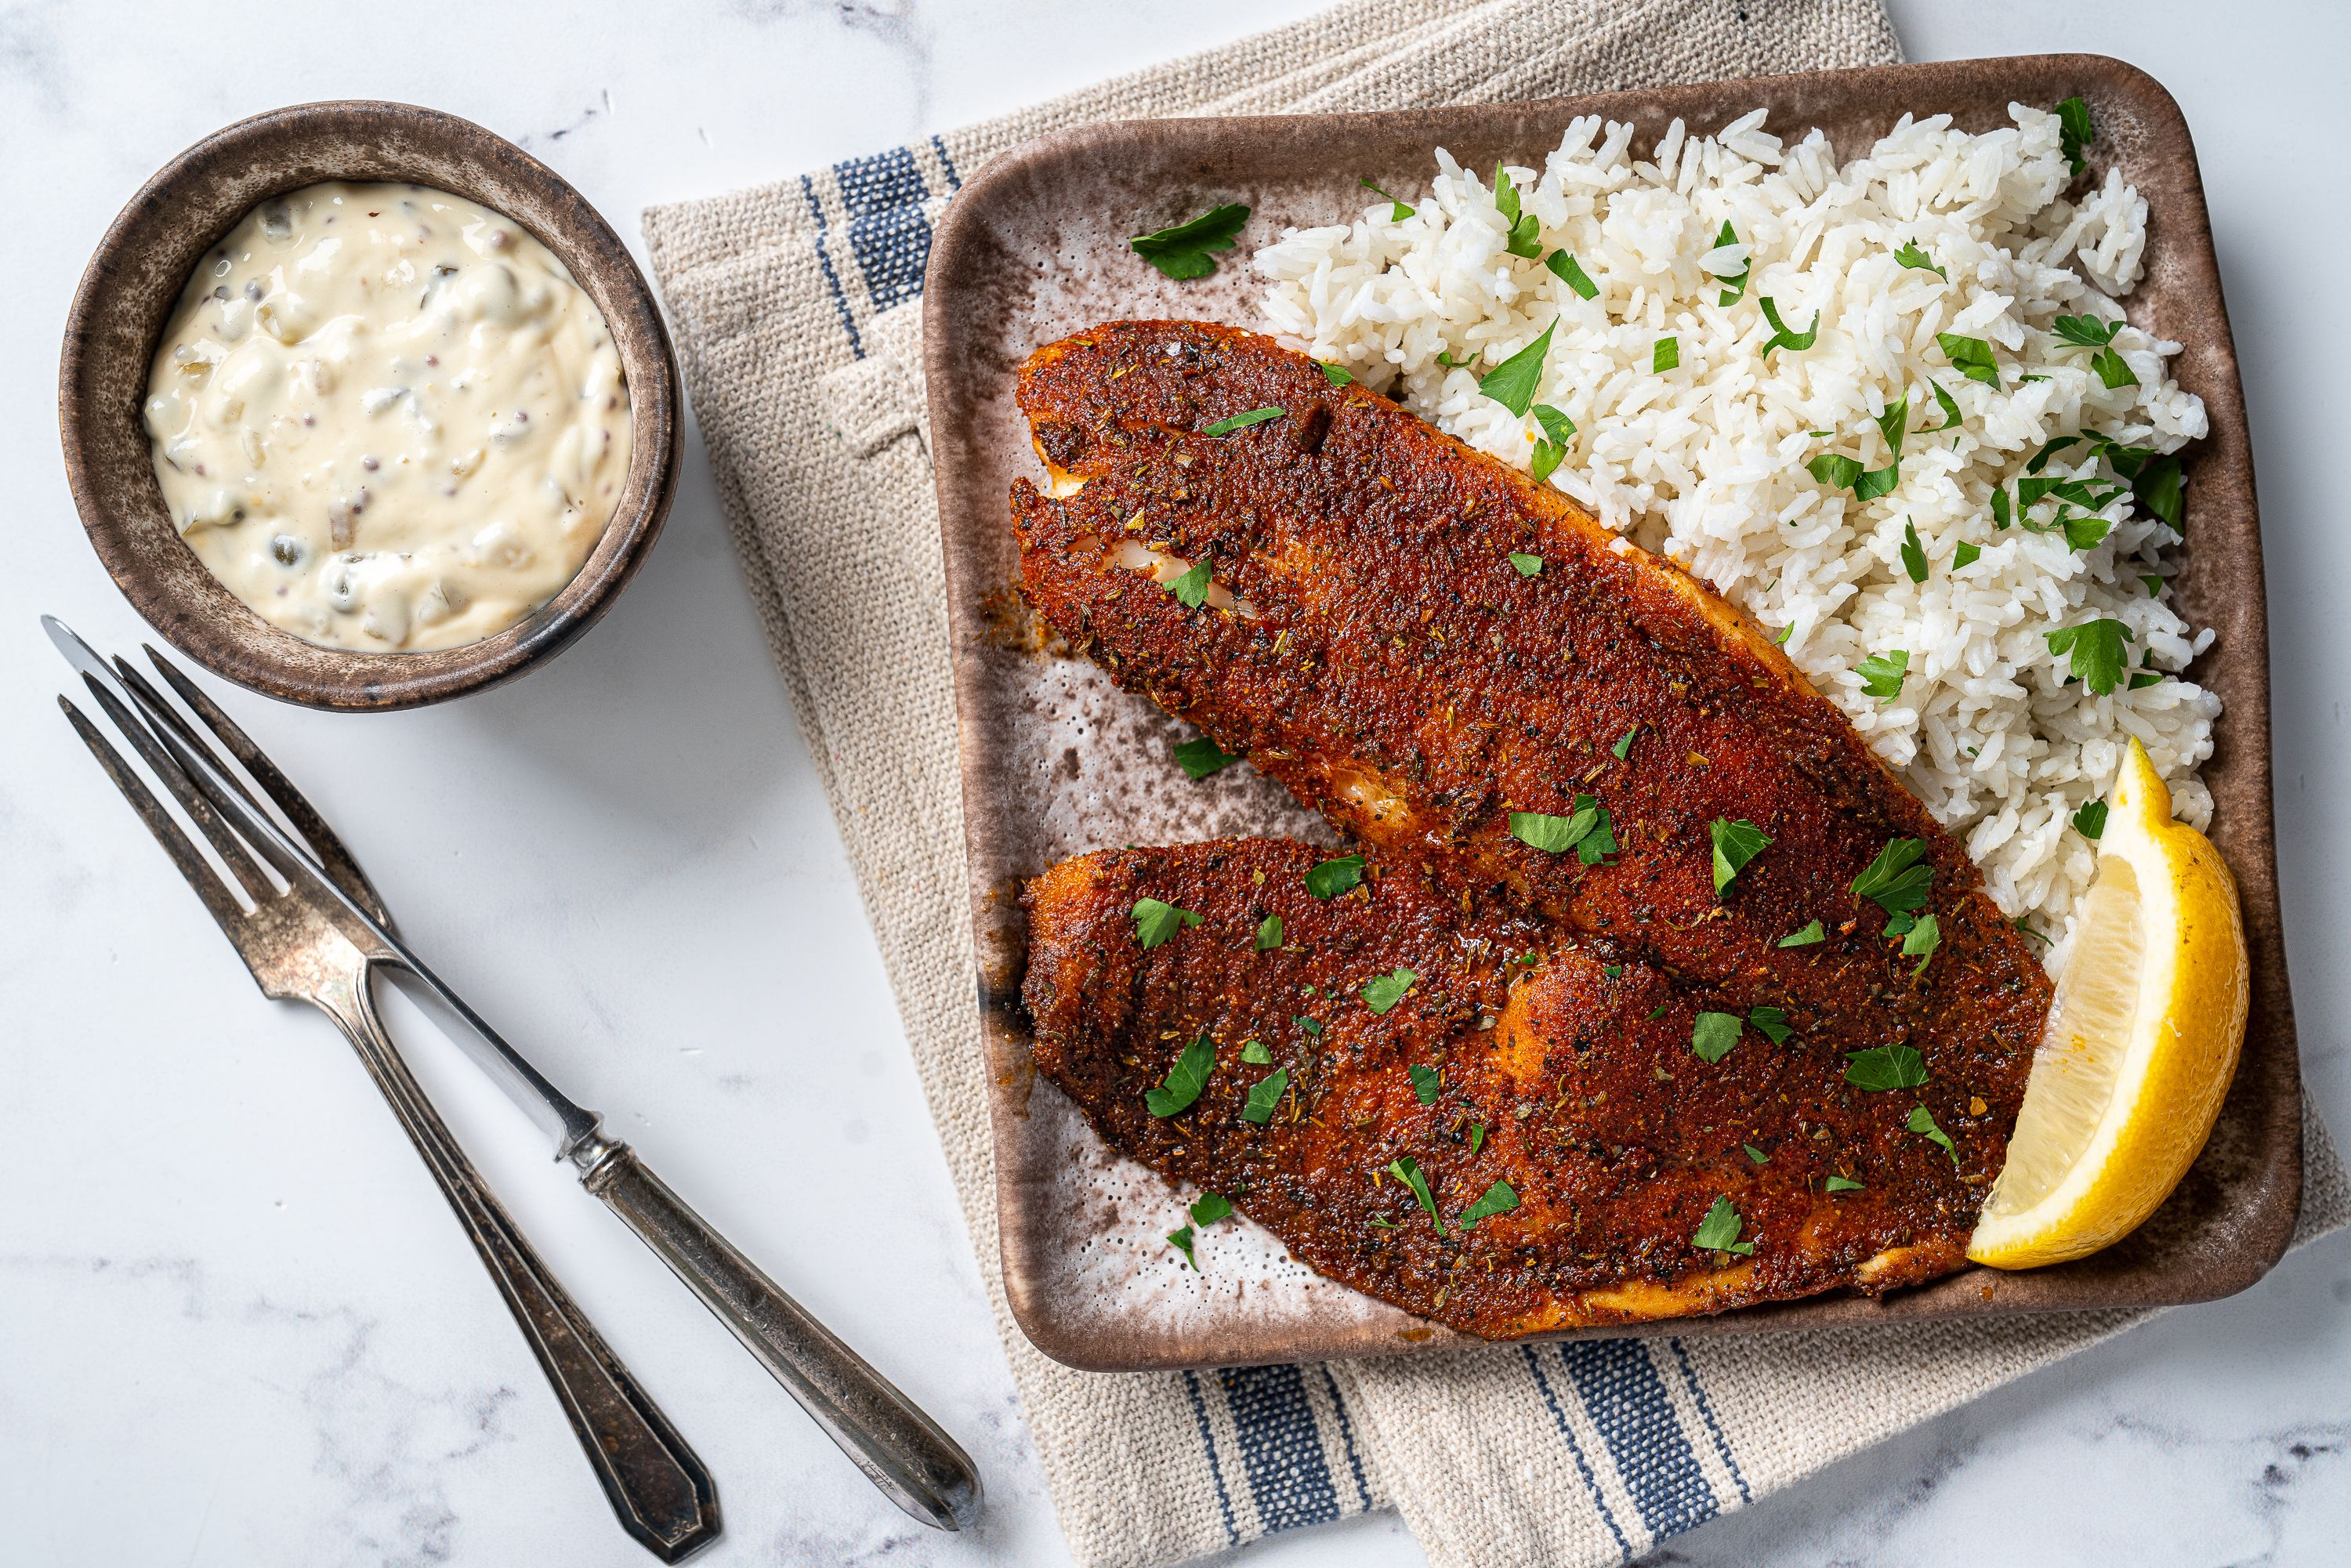 Make Baked Blackened Tilapia for a Flavorful Dinner in 20 Minutes